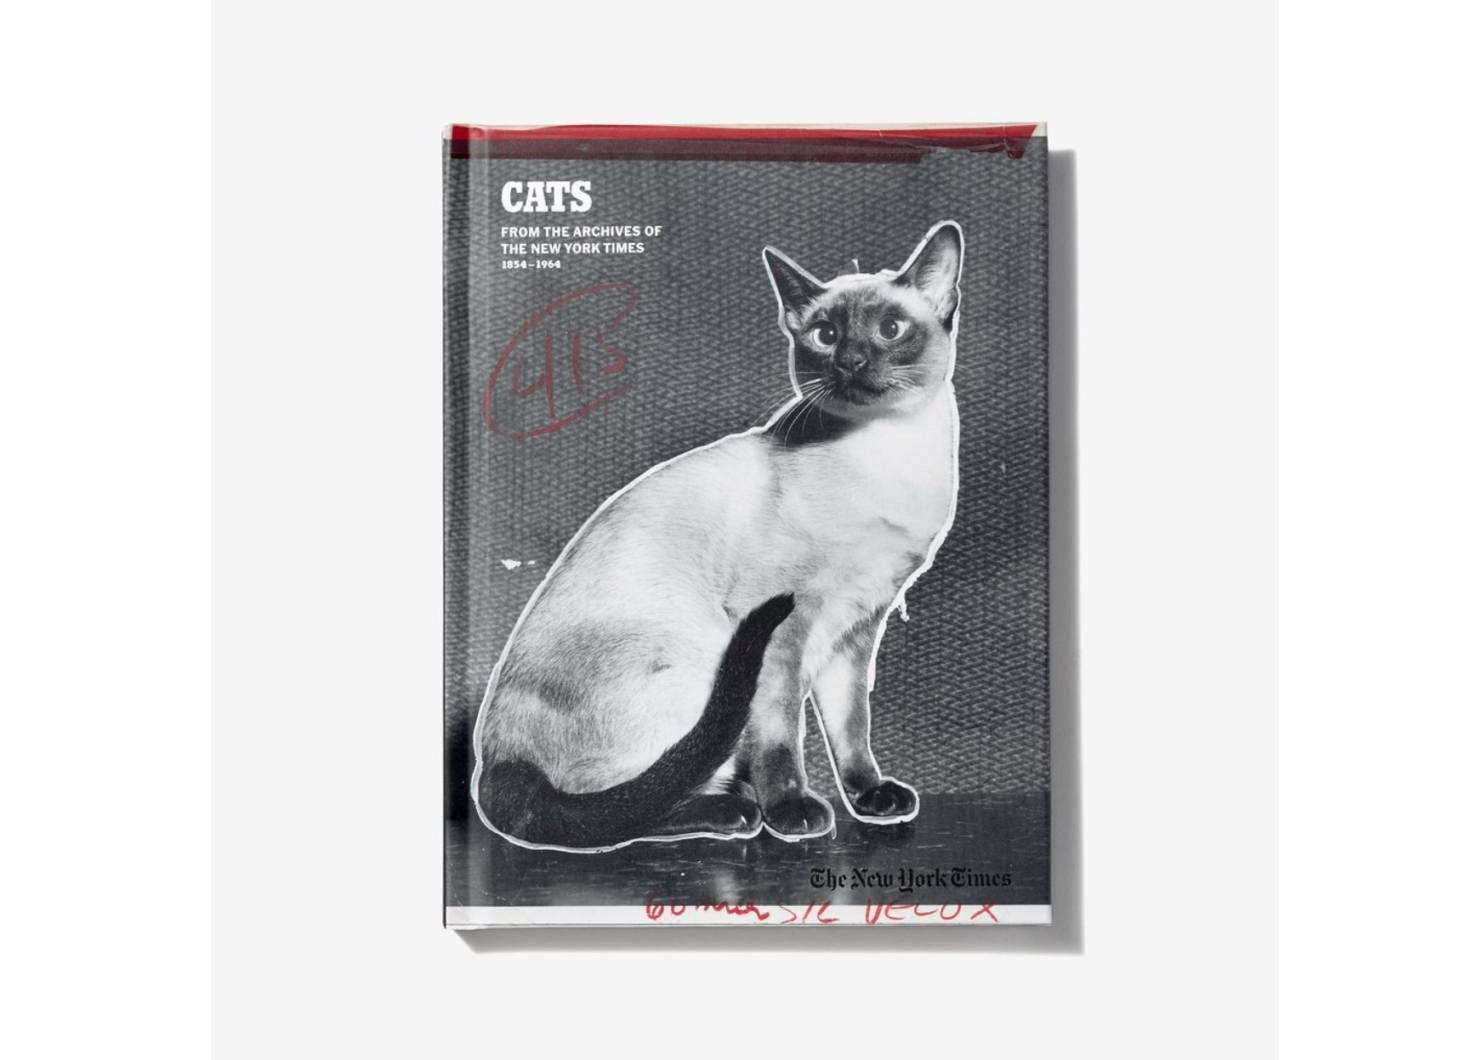 For the cerebral cat, try Cats of the Times, a book filled with stories of kooky felines that ran in The New York Times between 54 and 64. About the tales, says the paper: &#8